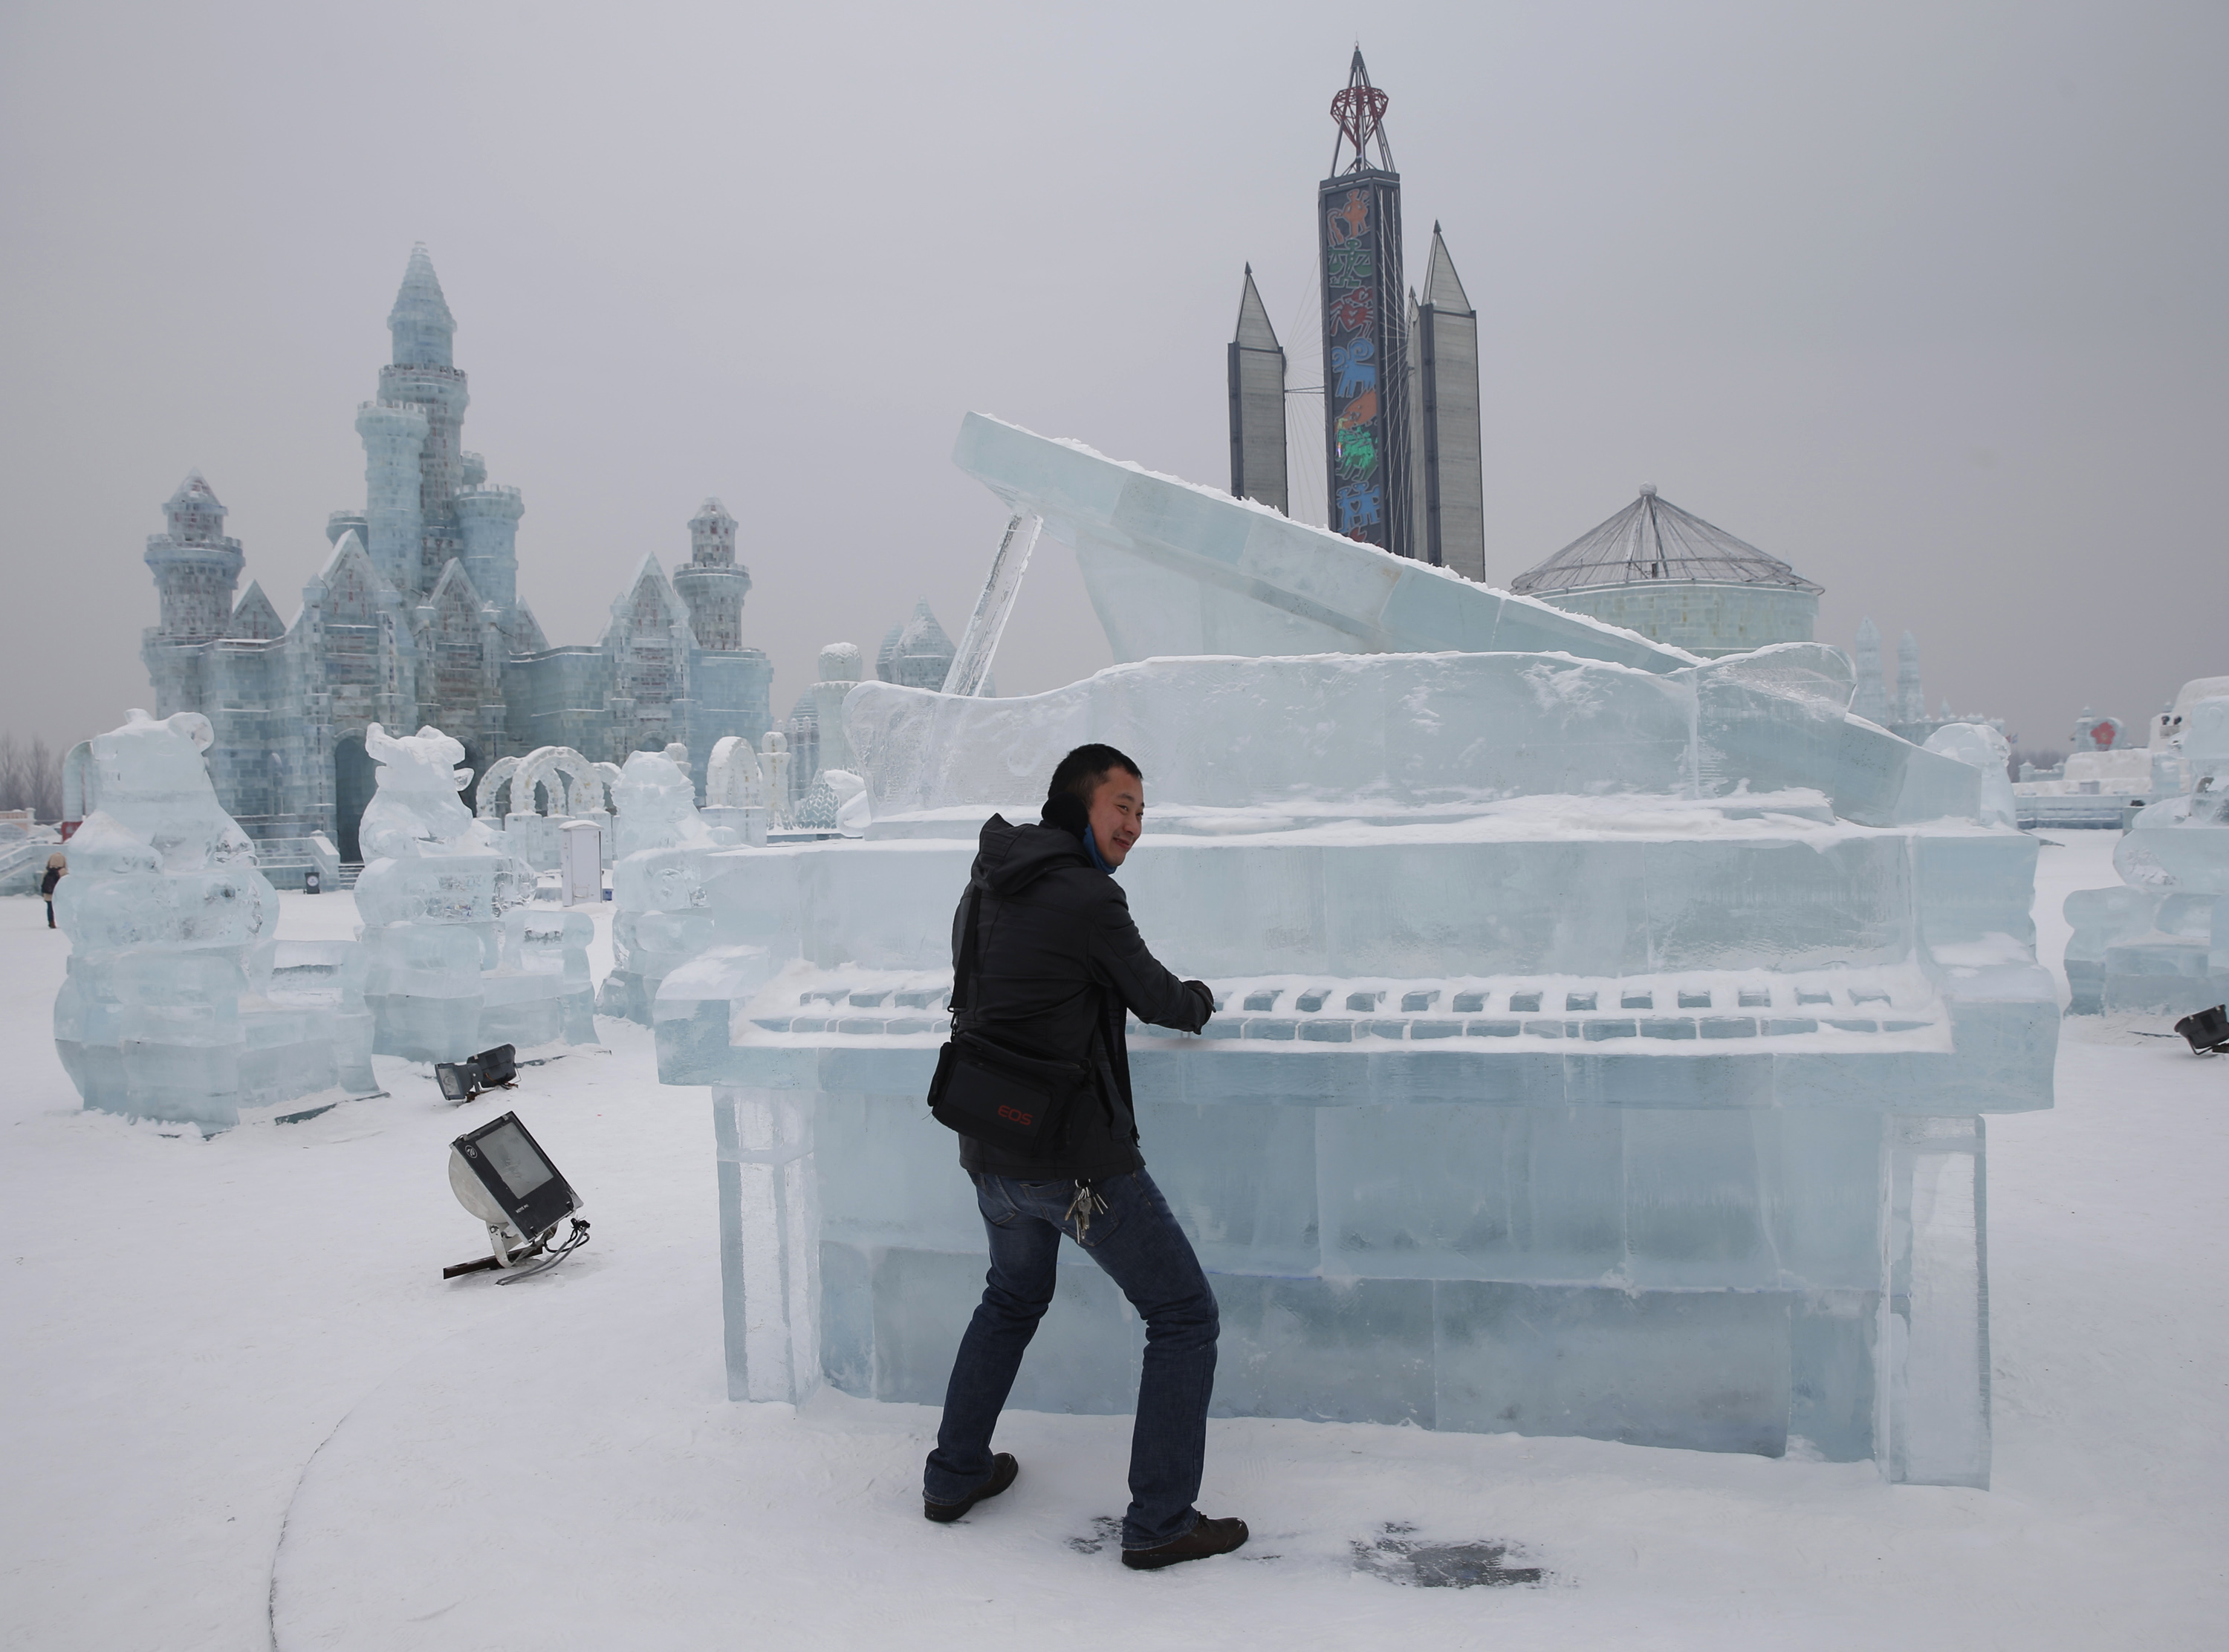 A visitor has his picture taken with a piano-shaped ice sculpture ahead of the 31st Harbin International Ice and Snow Festival in the northern city of Harbin, Heilongjiang province, January 4, 2015. The winter festival will be officially opened on January 5, 2015. REUTERS/Kim Kyung-Hoon